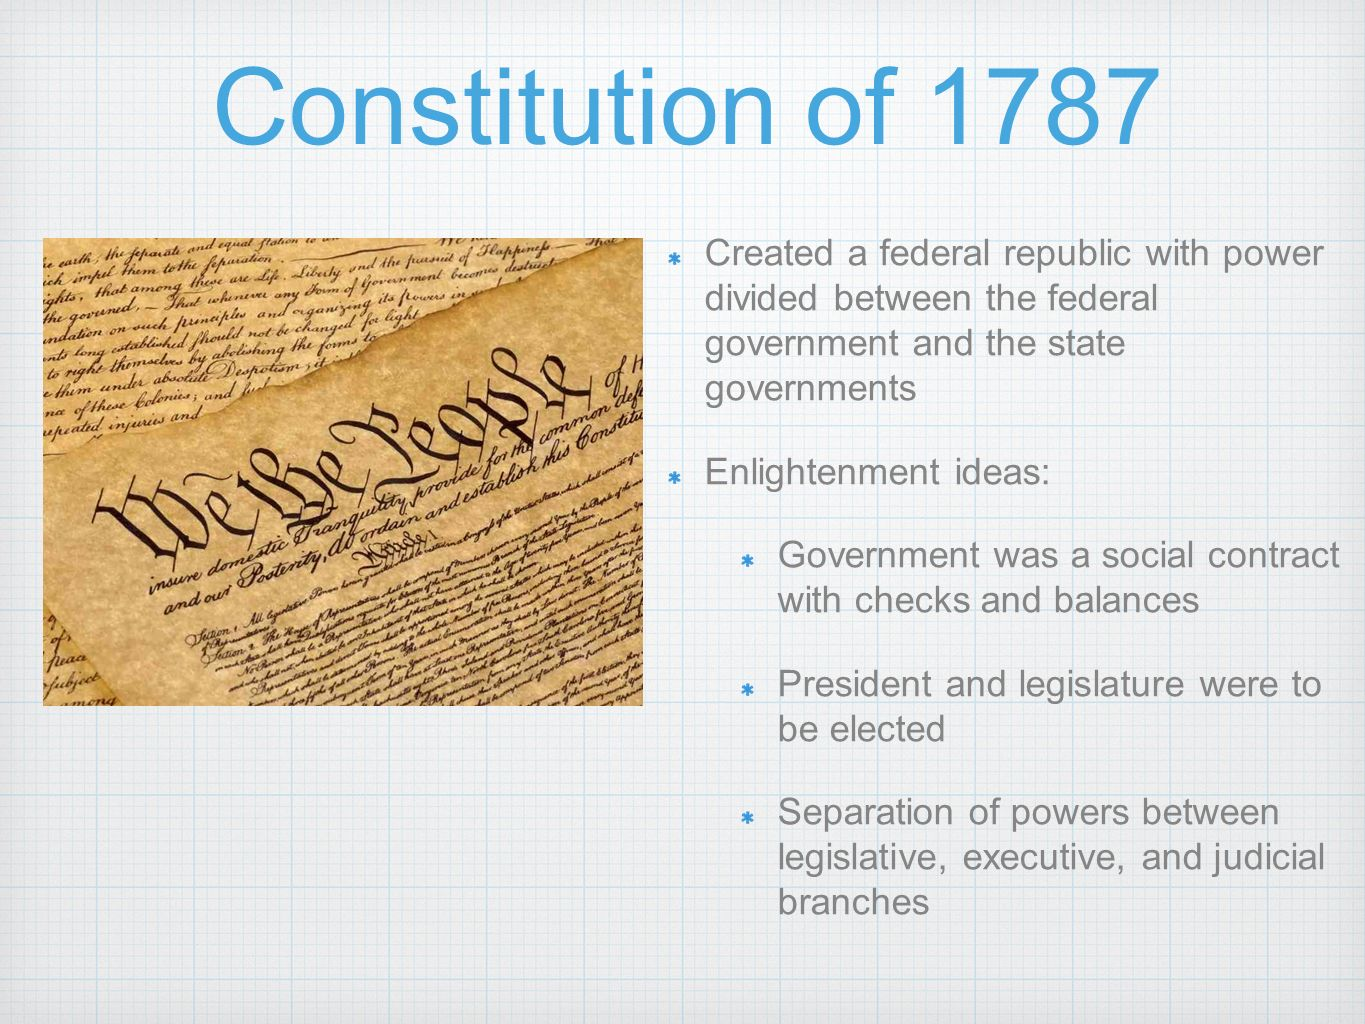 the changes in national government in america in 1787 The articles of confederation was the first written constitution of the united states the central government lacked the ability to levy taxes and regulate commerce, issues that led to the constitutional convention in 1787 for the creation of new and the growth of national feeling.